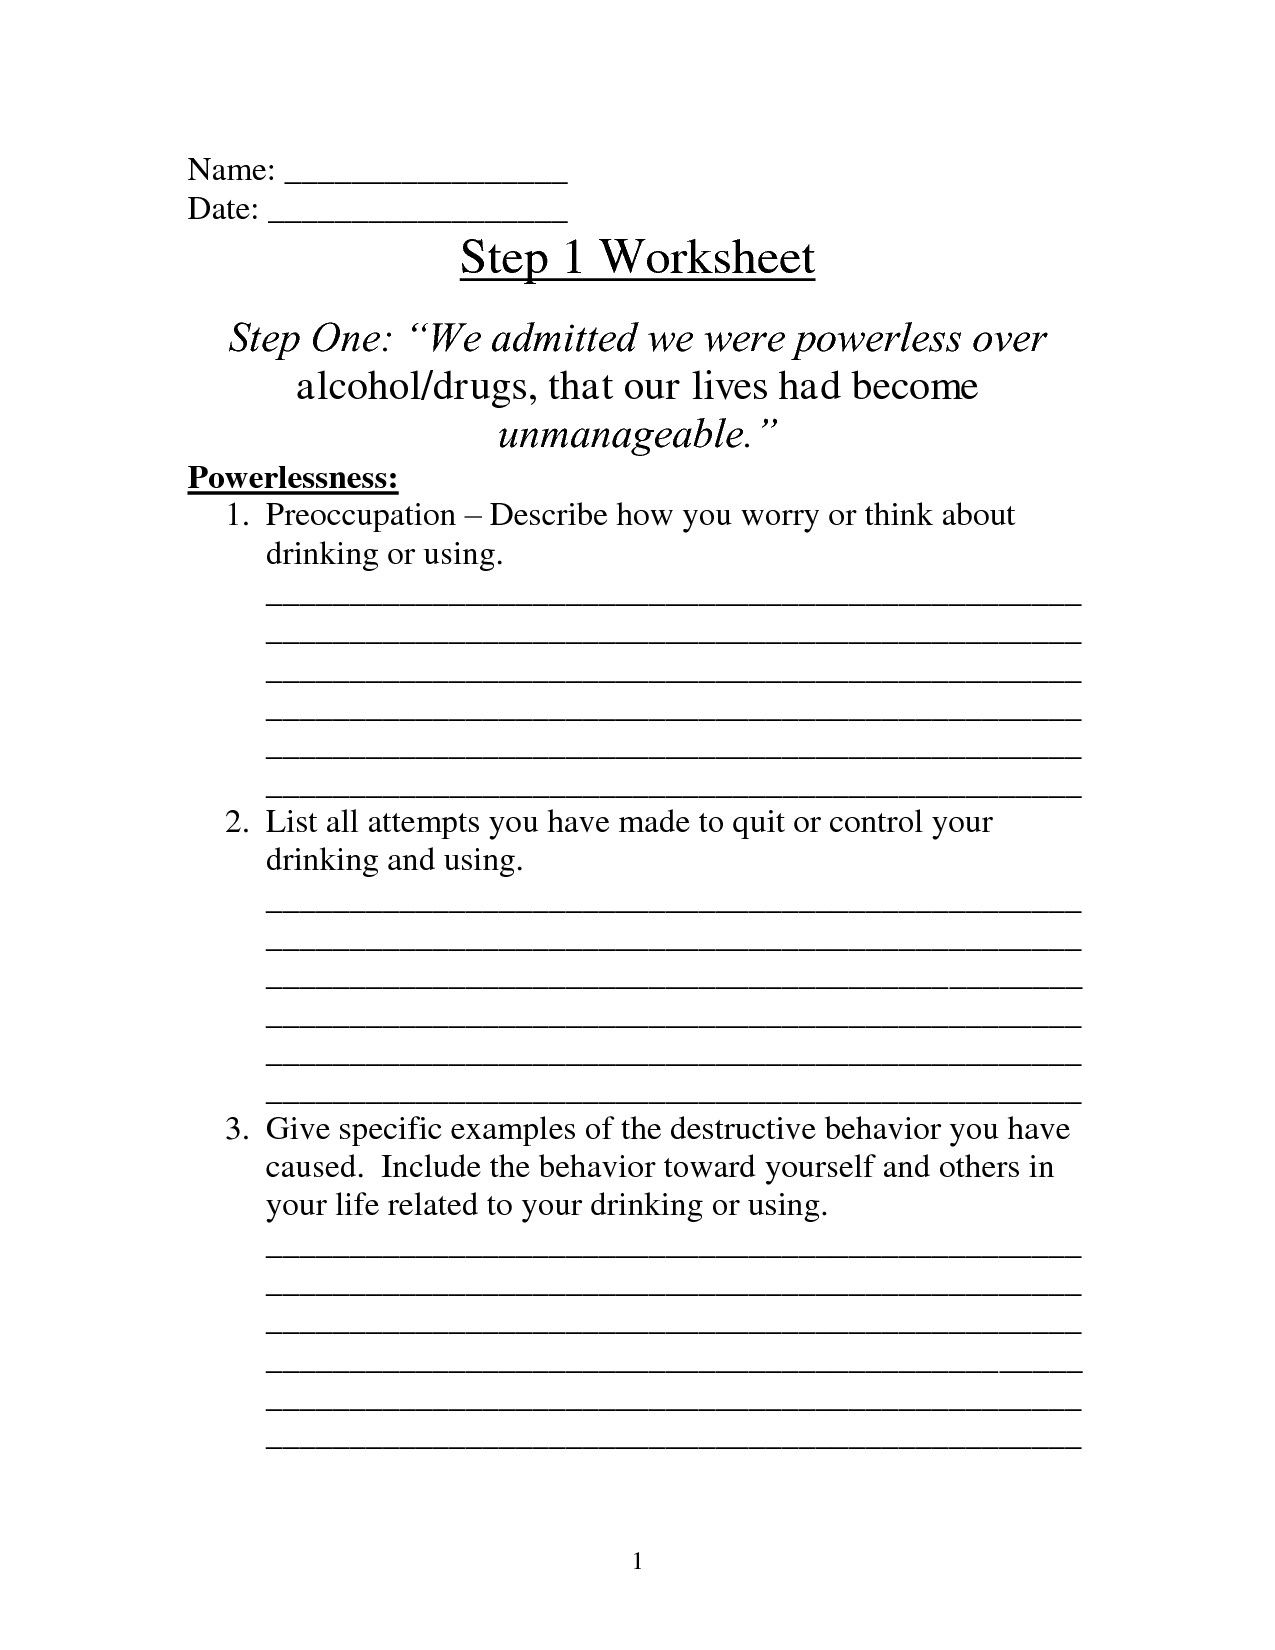 Addictive Behaviors Worksheet